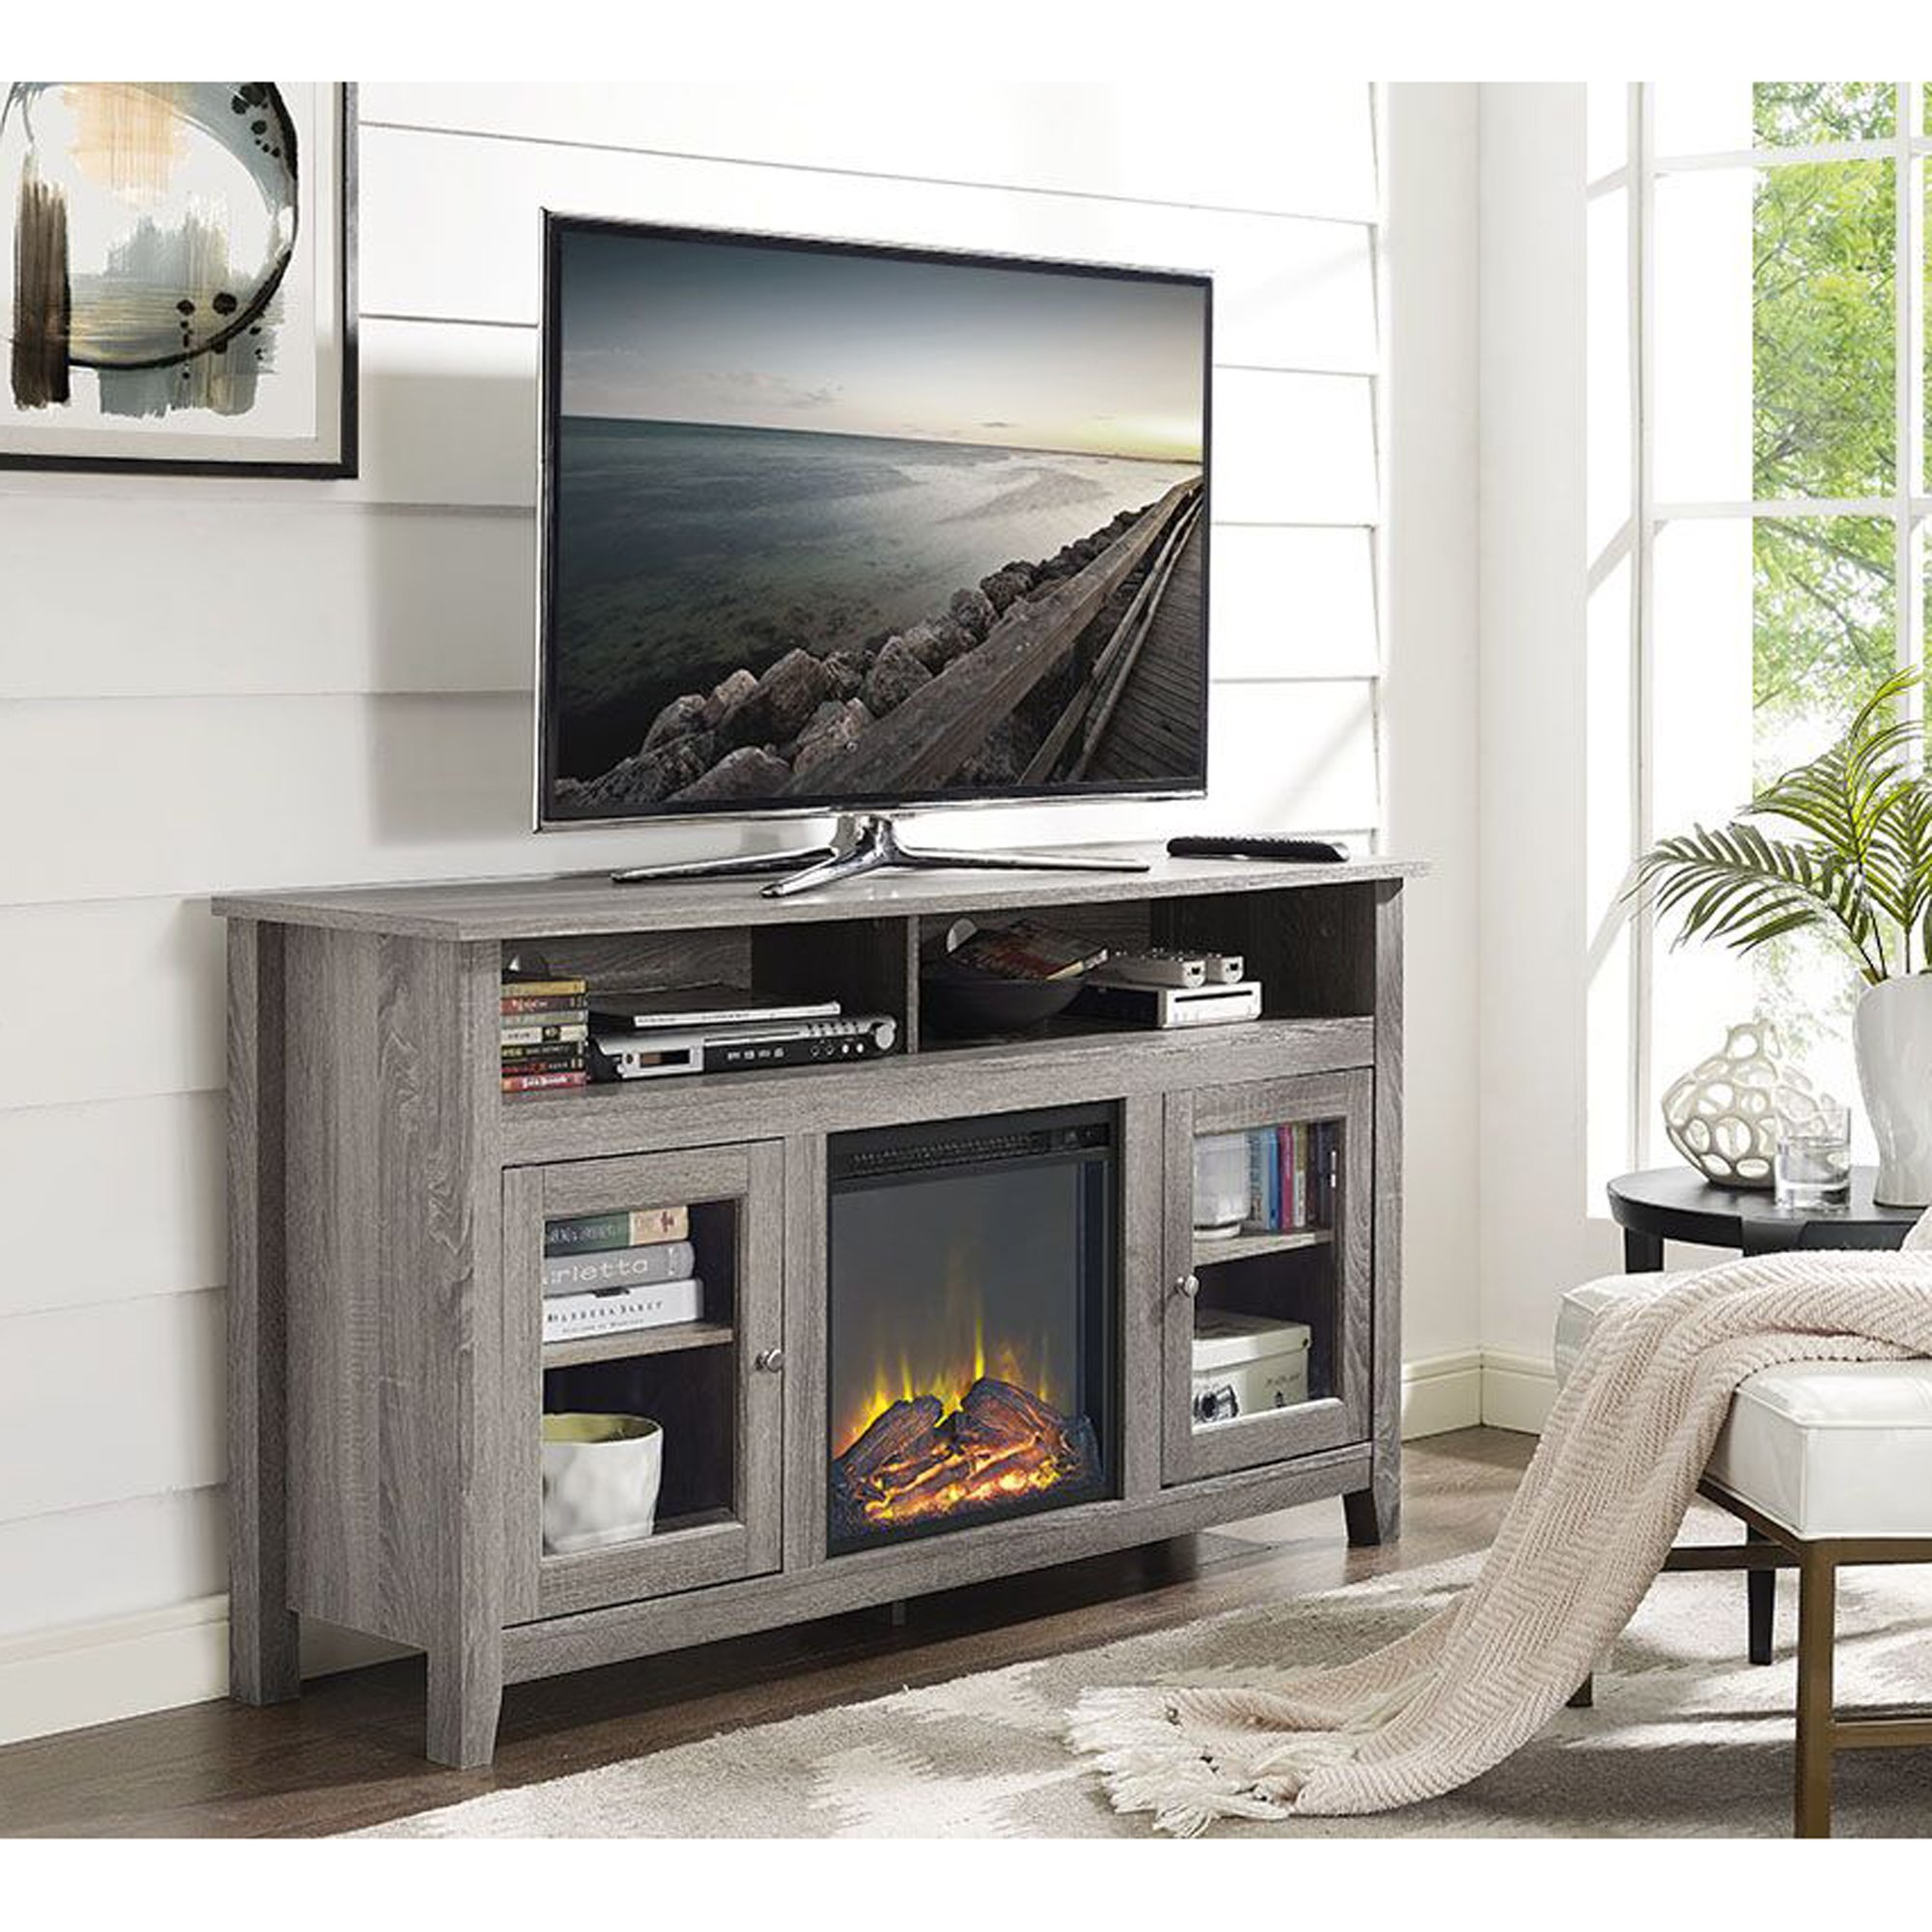 WE Furniture 58'' Wood Highboy Fireplace Media TV Stand Console, Driftwood